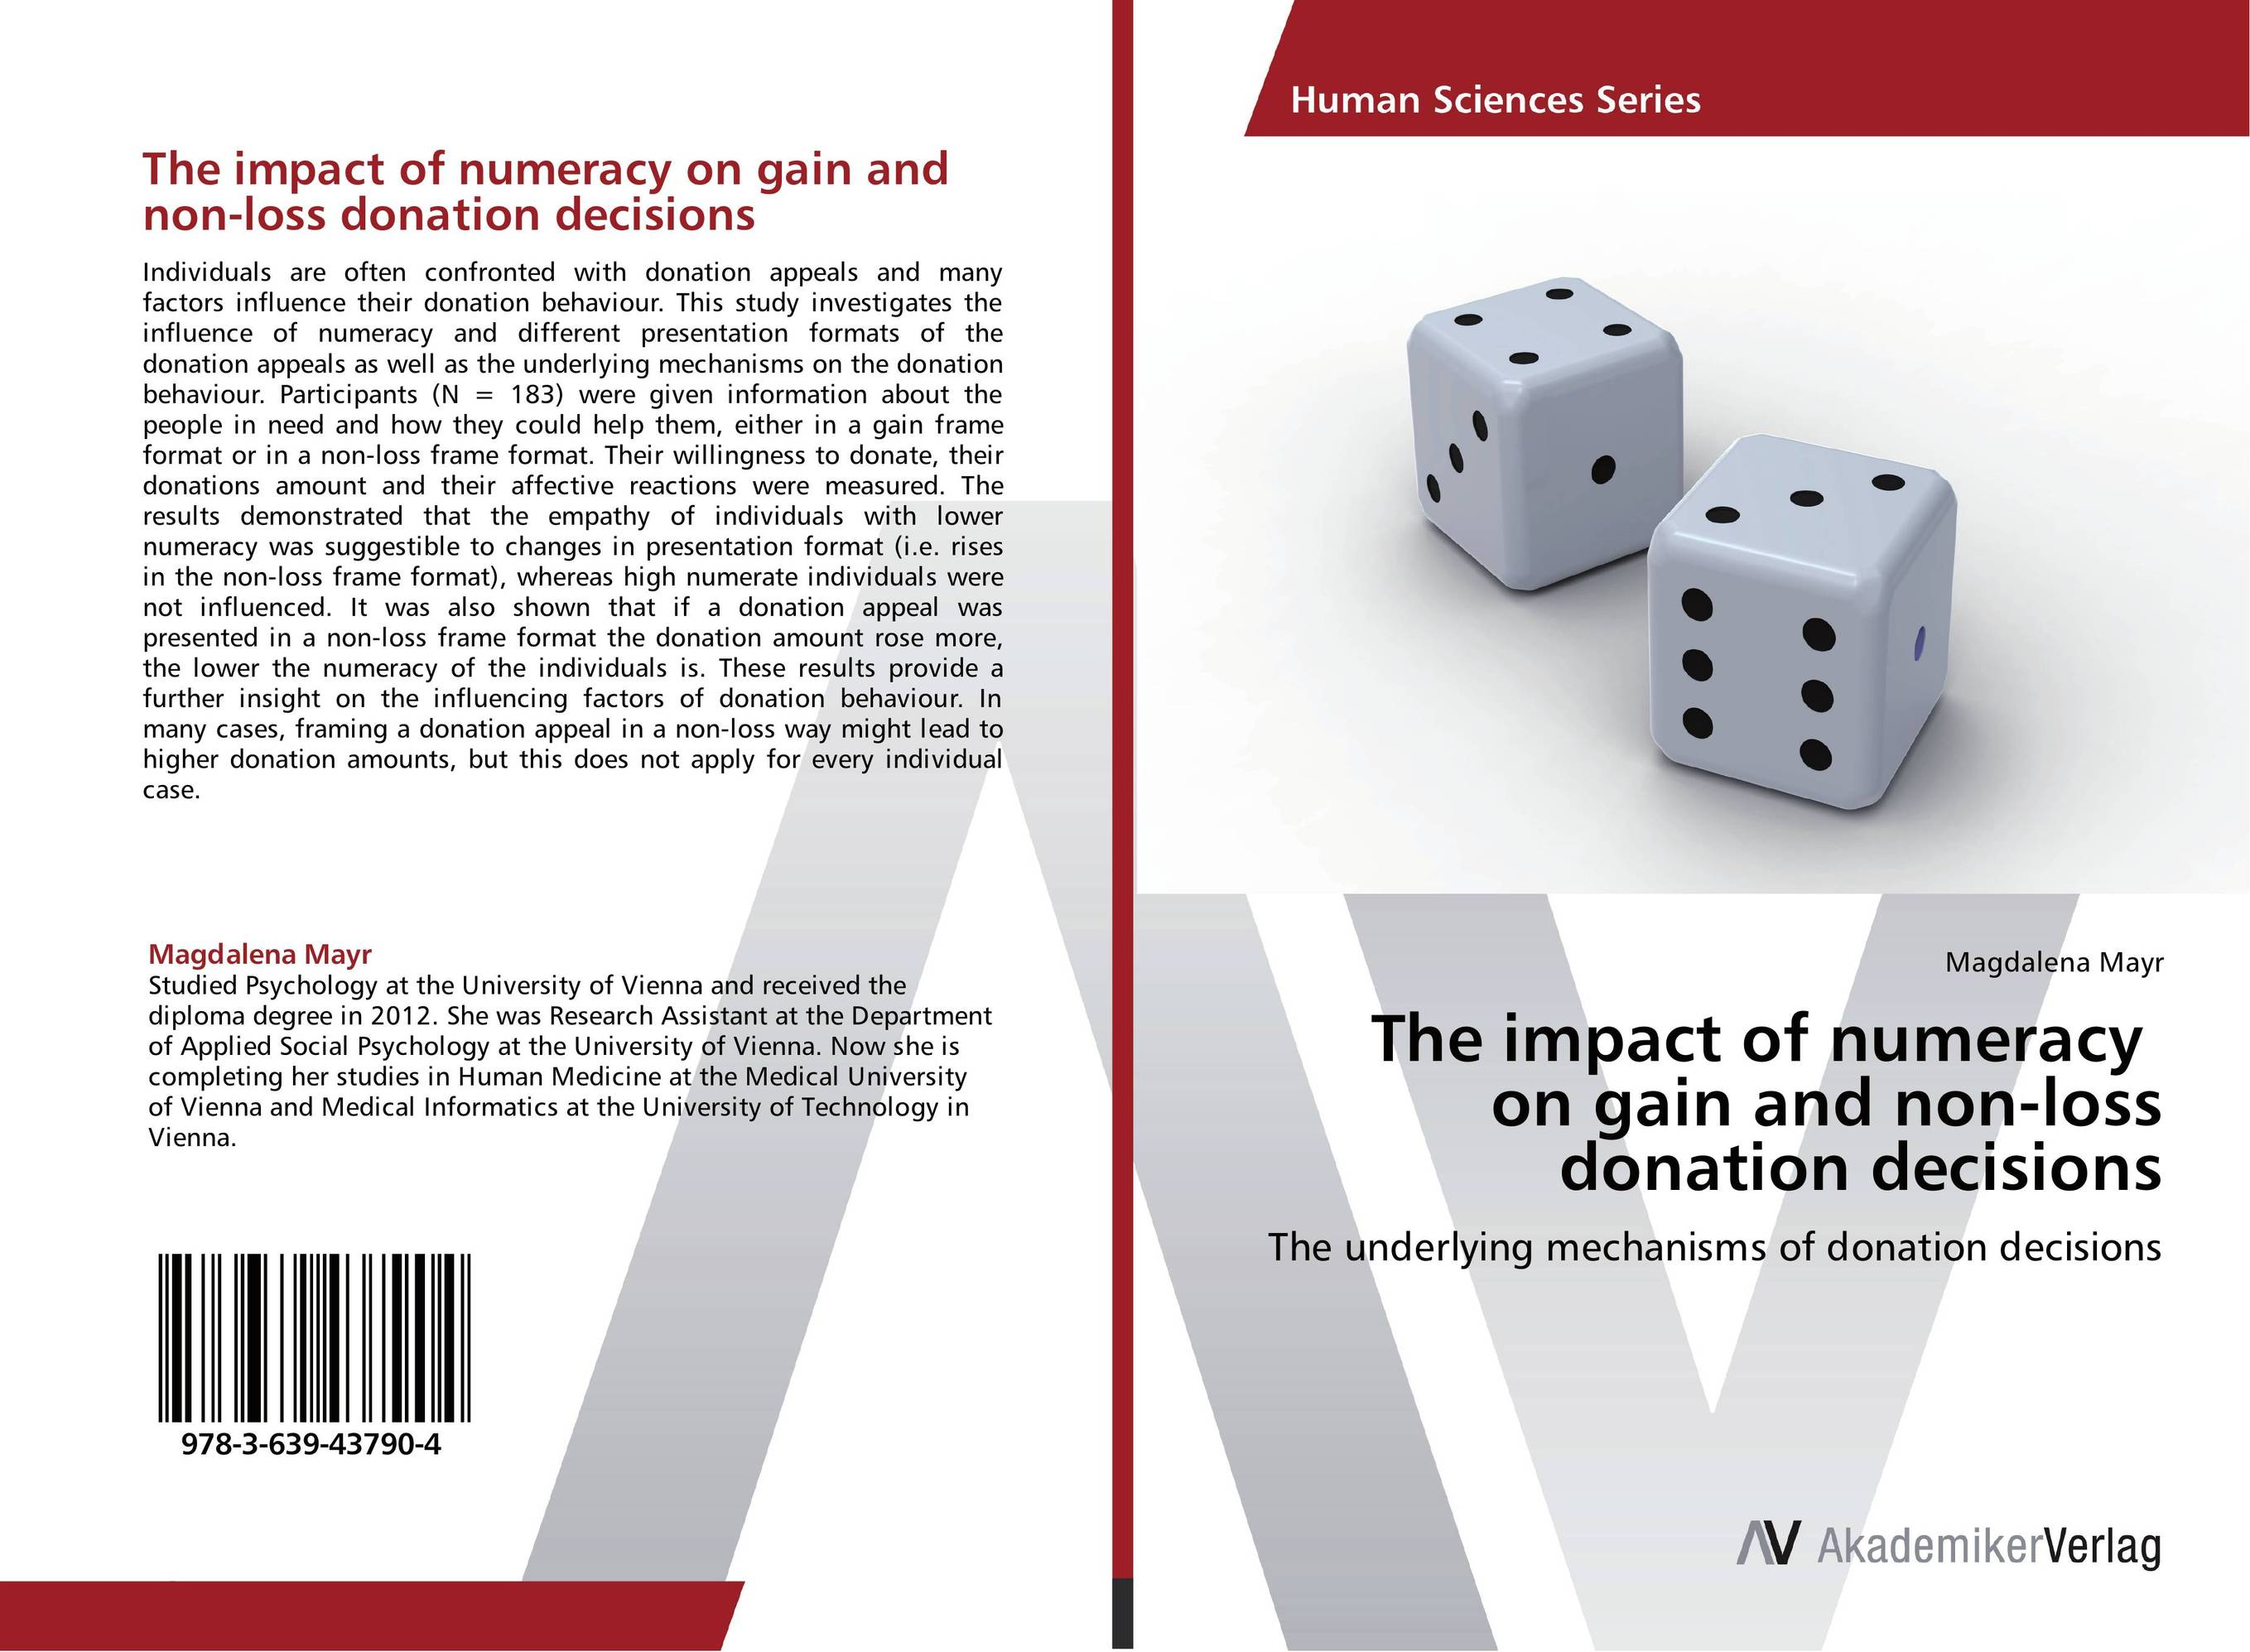 The impact of numeracy on gain and non-loss donation decisions